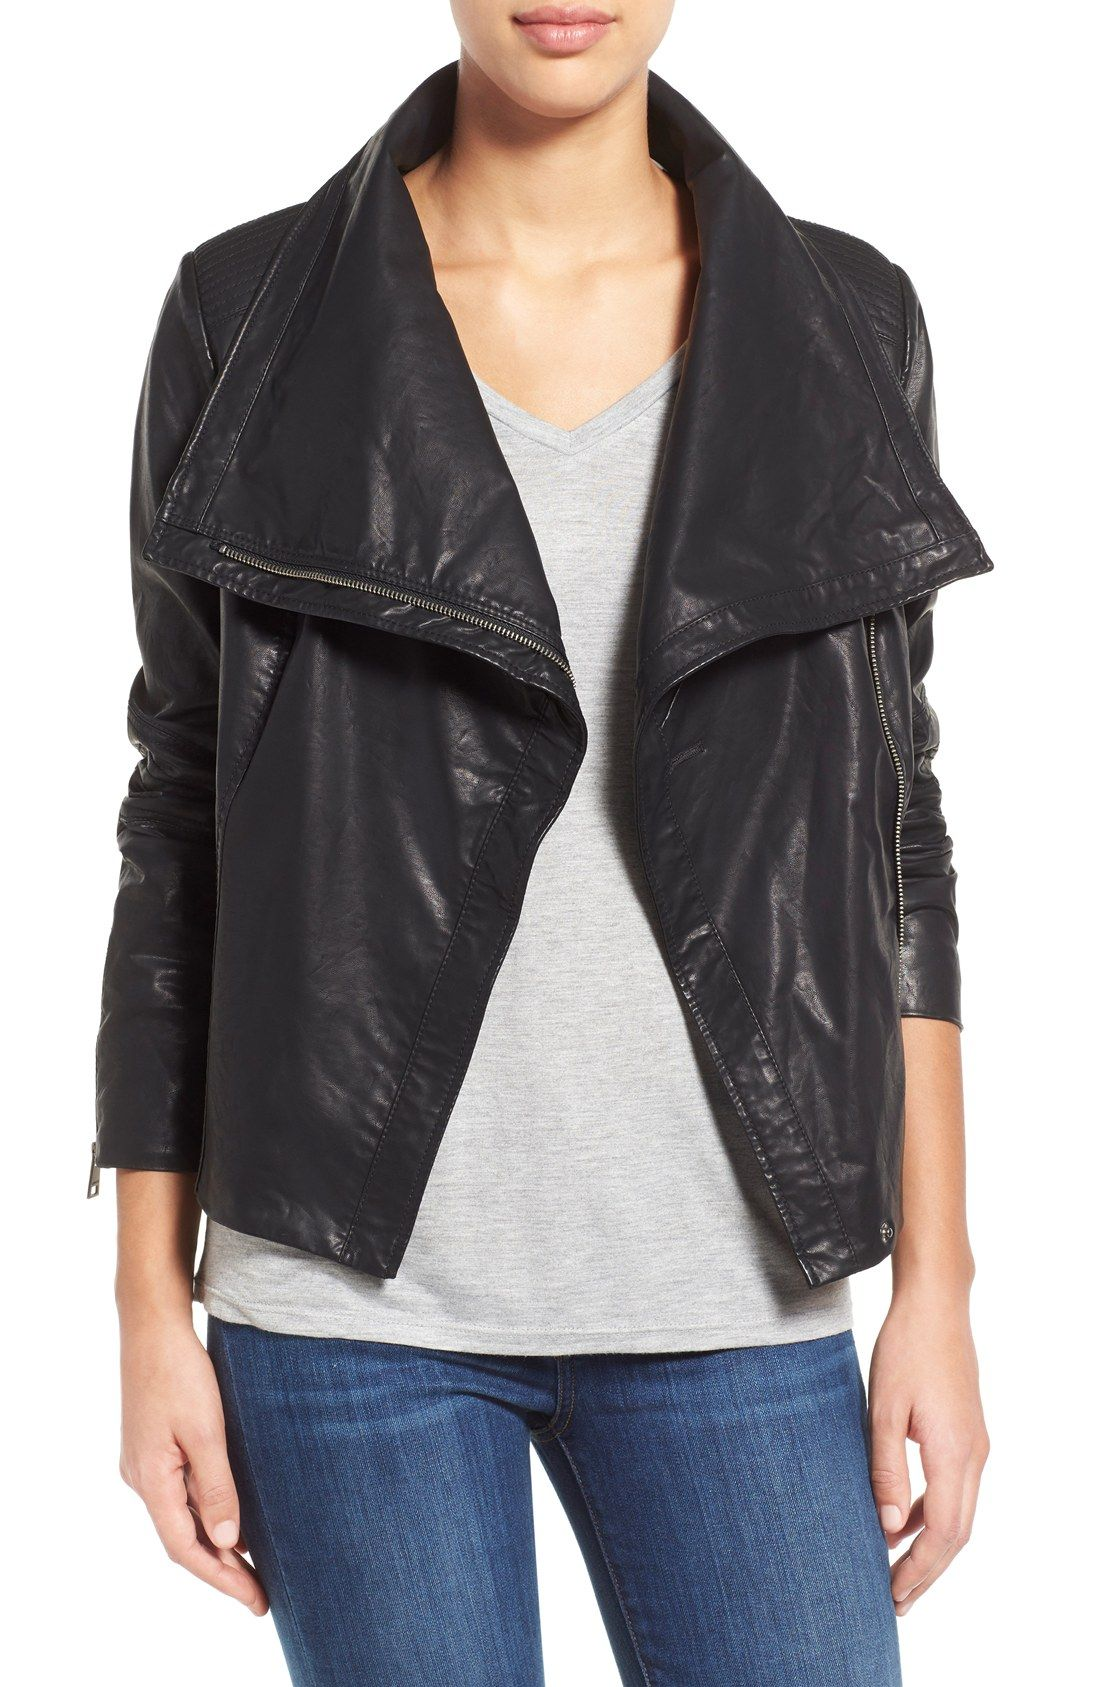 nordstrom anniversary sale faux leather jacket Leather